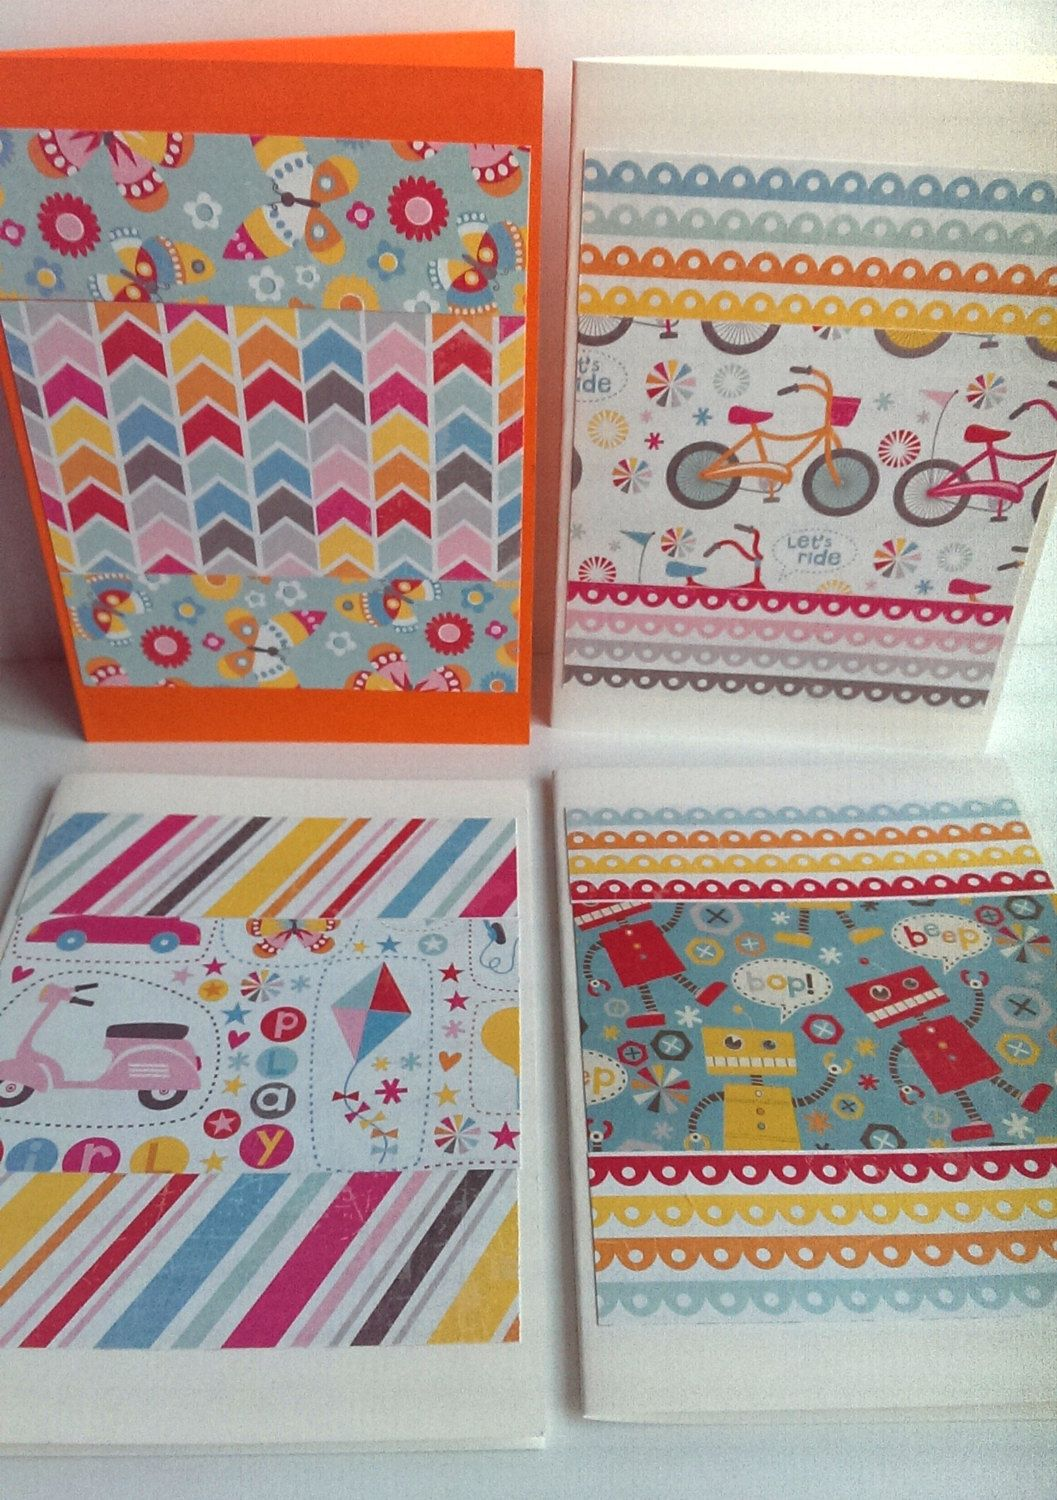 4 handmade greeting cards pack of 4 blank note cards patterned 4 handmade greeting cards pack of 4 blank note cards patterned papers blank kristyandbryce Image collections